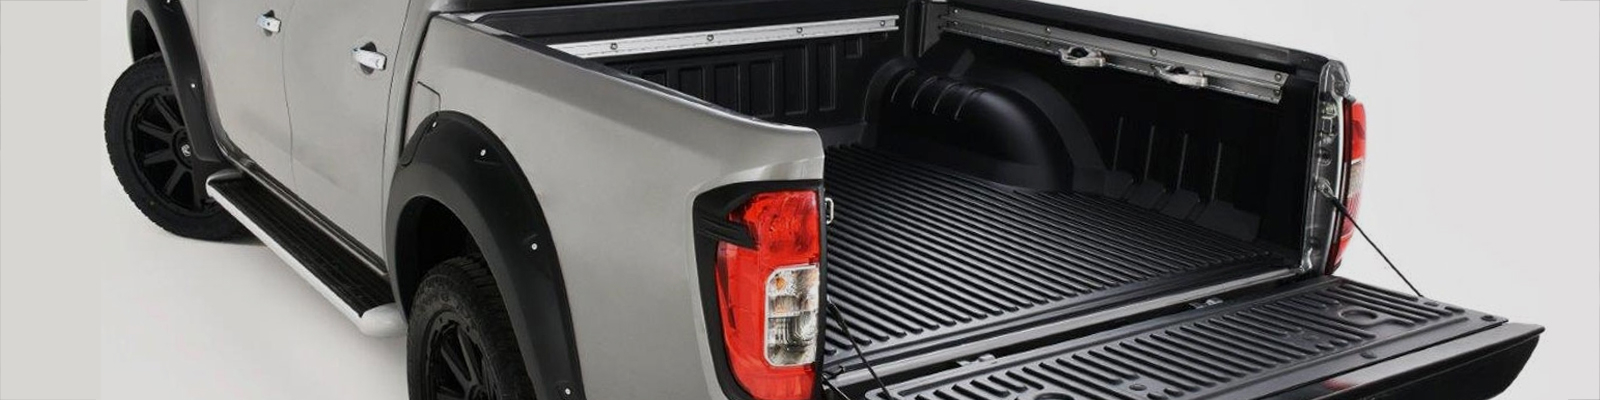 Pickup Load Bed Liners